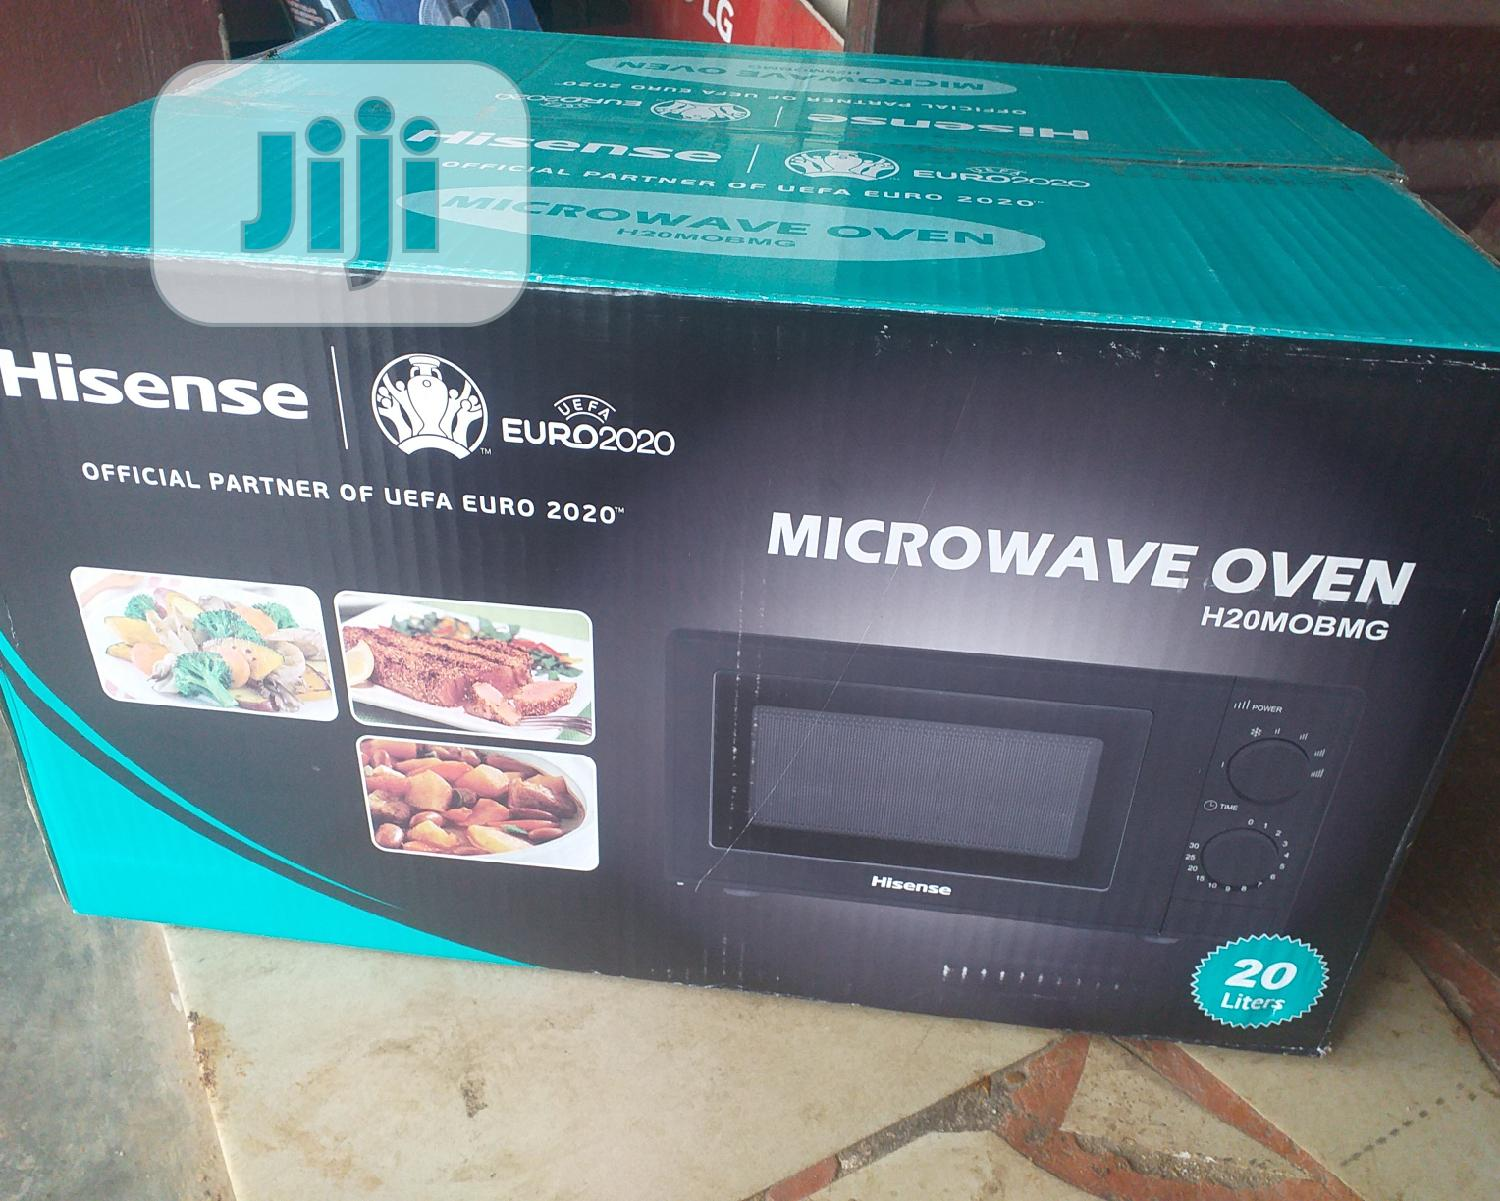 Hisense Microwave Oven H20mobmg